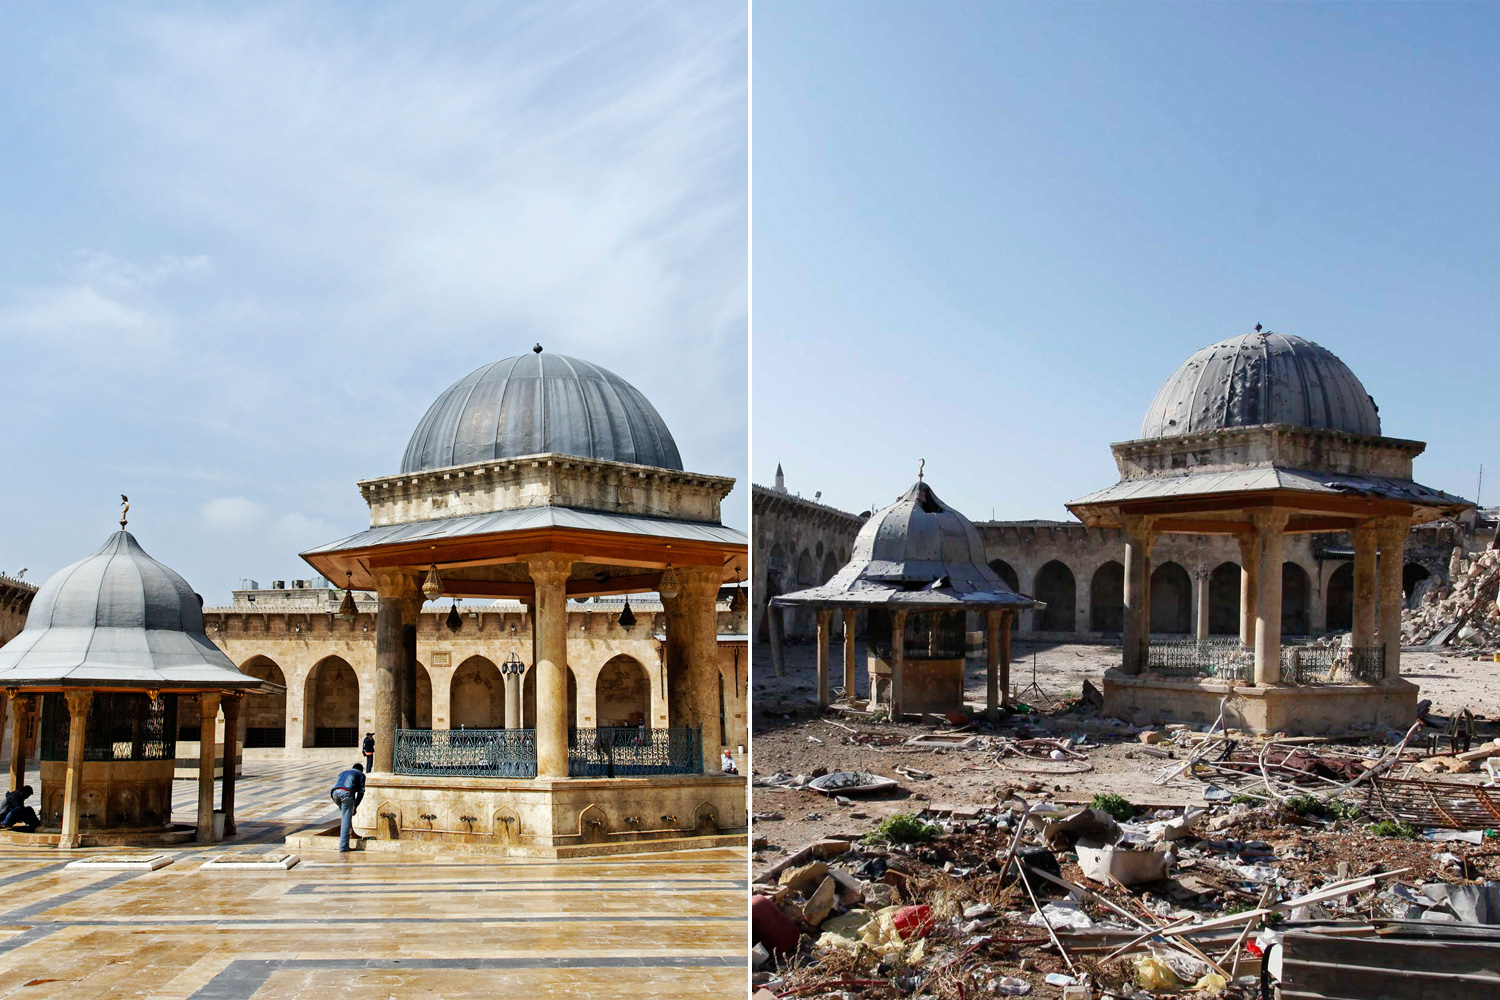 Destroyed Mosque